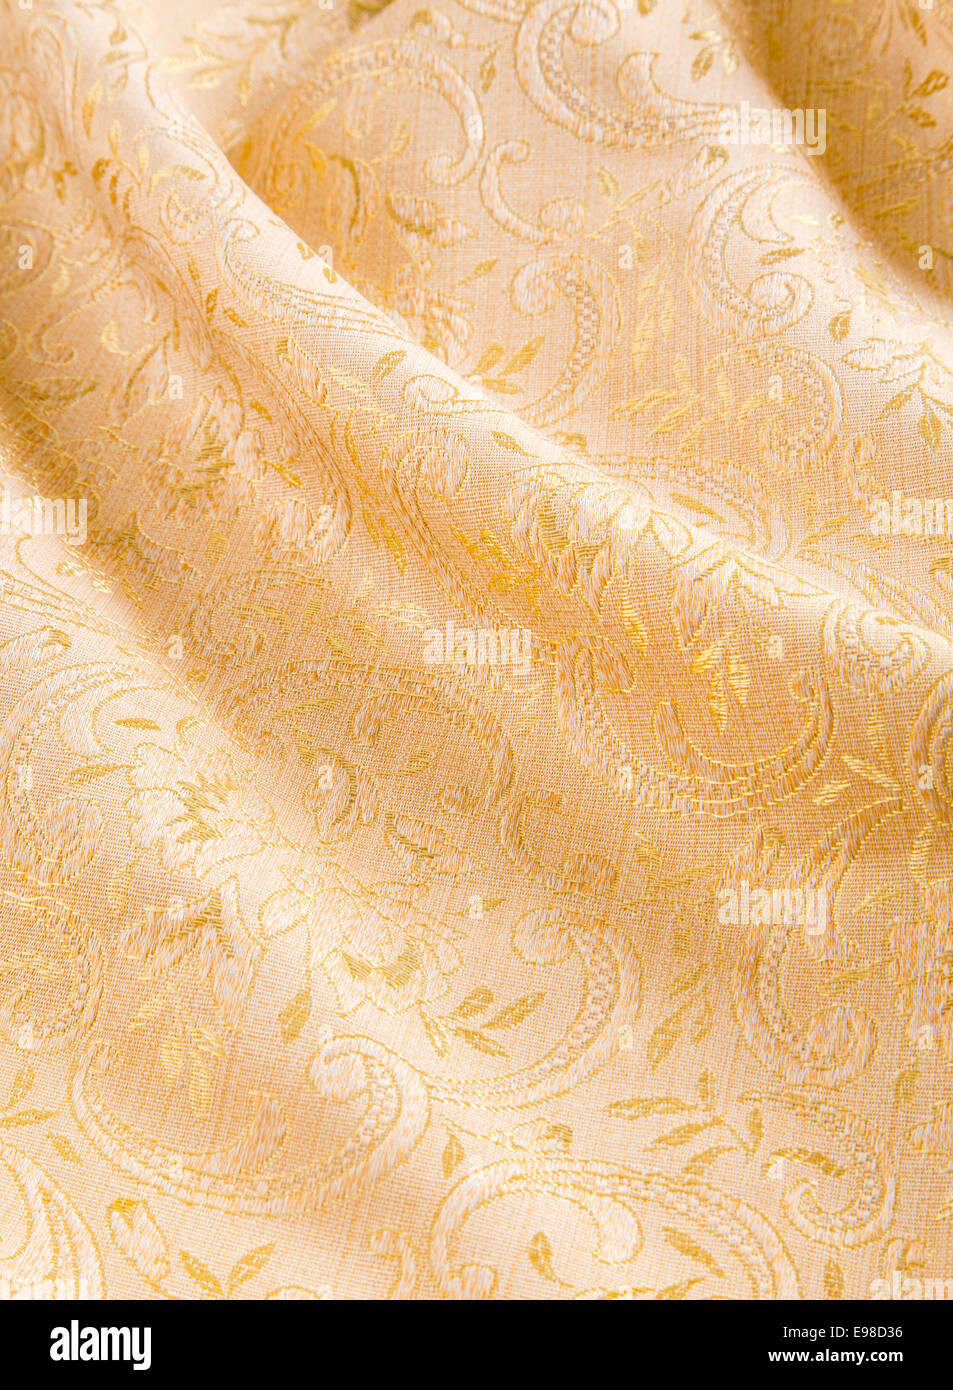 Soft folds of draped gold damask with a shiny floral pattern for a luxurious background of textiles used for interior - Stock Image